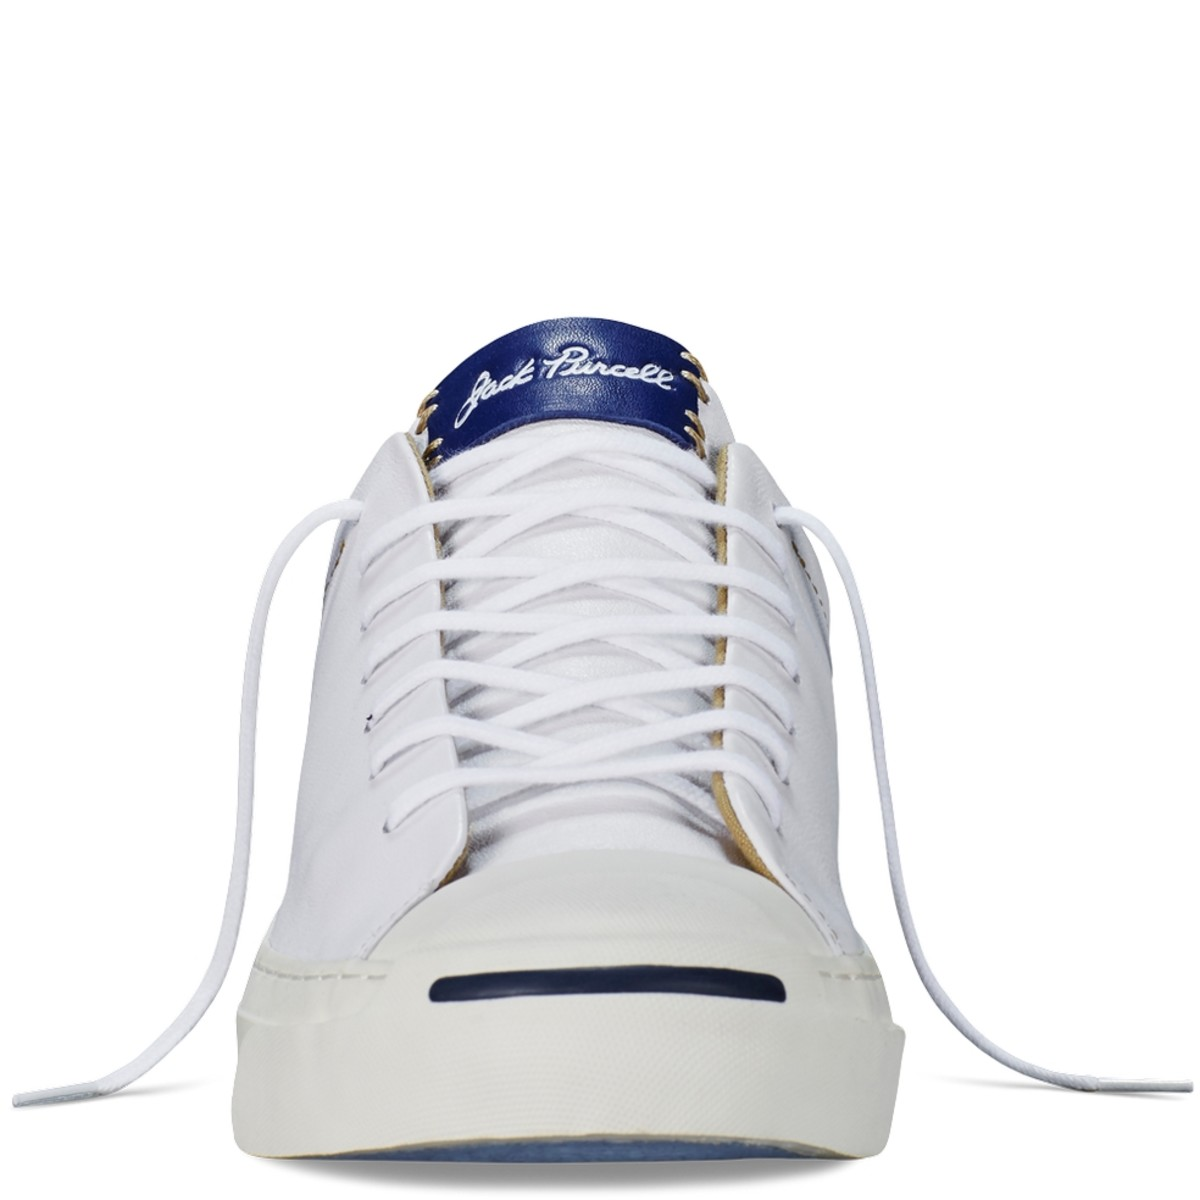 the-converse-jack-purcell-remastered-in-tumbled-leather-8